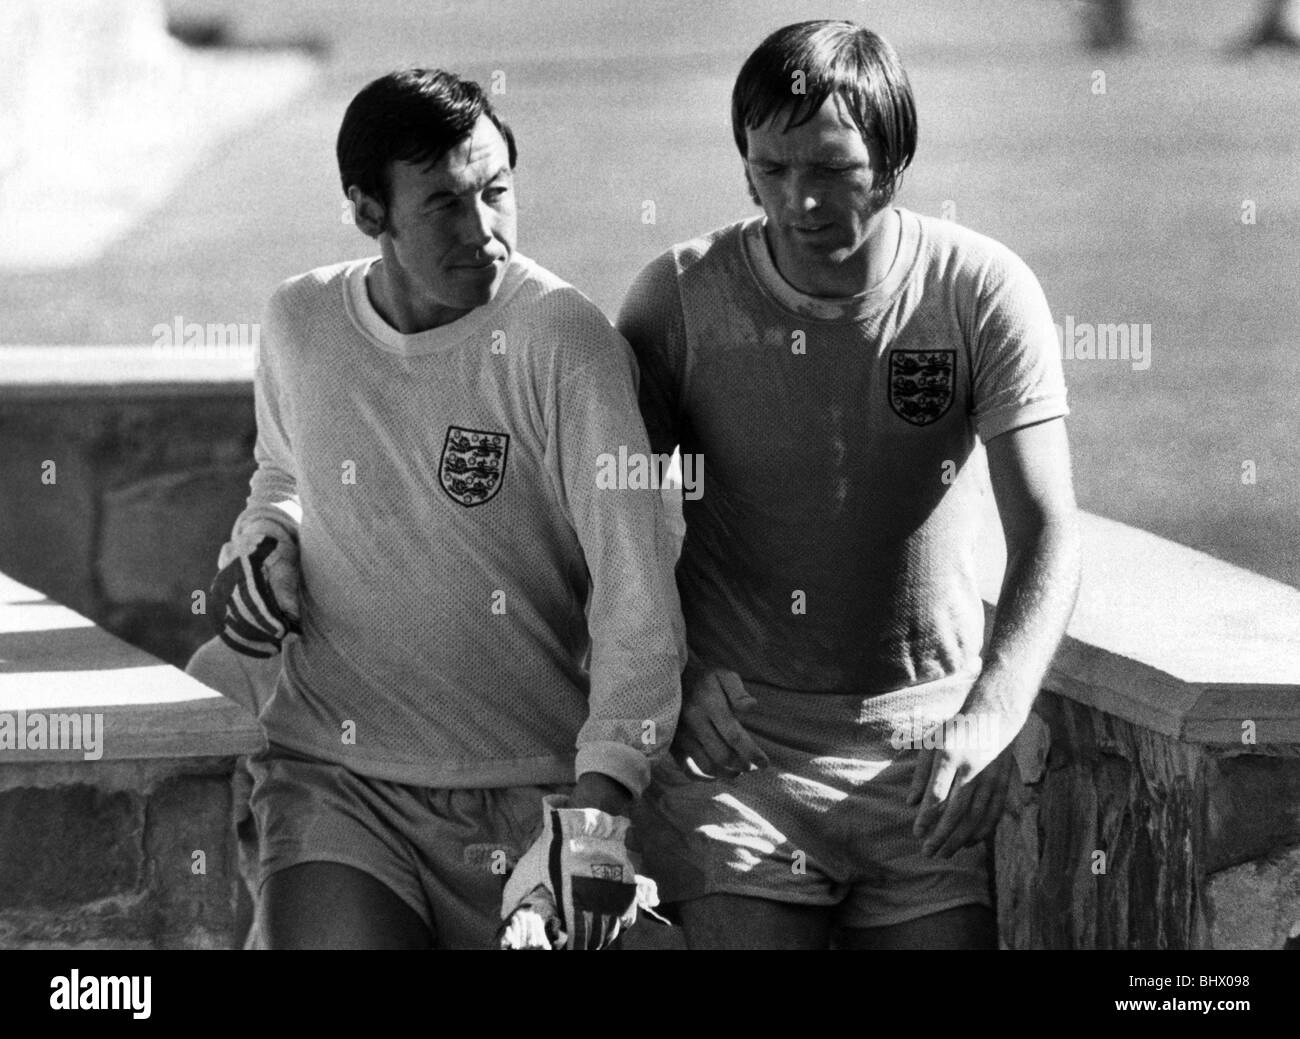 World Cup Group C match in Guadalajara, Mexico England 1 v Czechoslovakia 0. Gordon Banks (left) and Jeff Astle - Stock Image